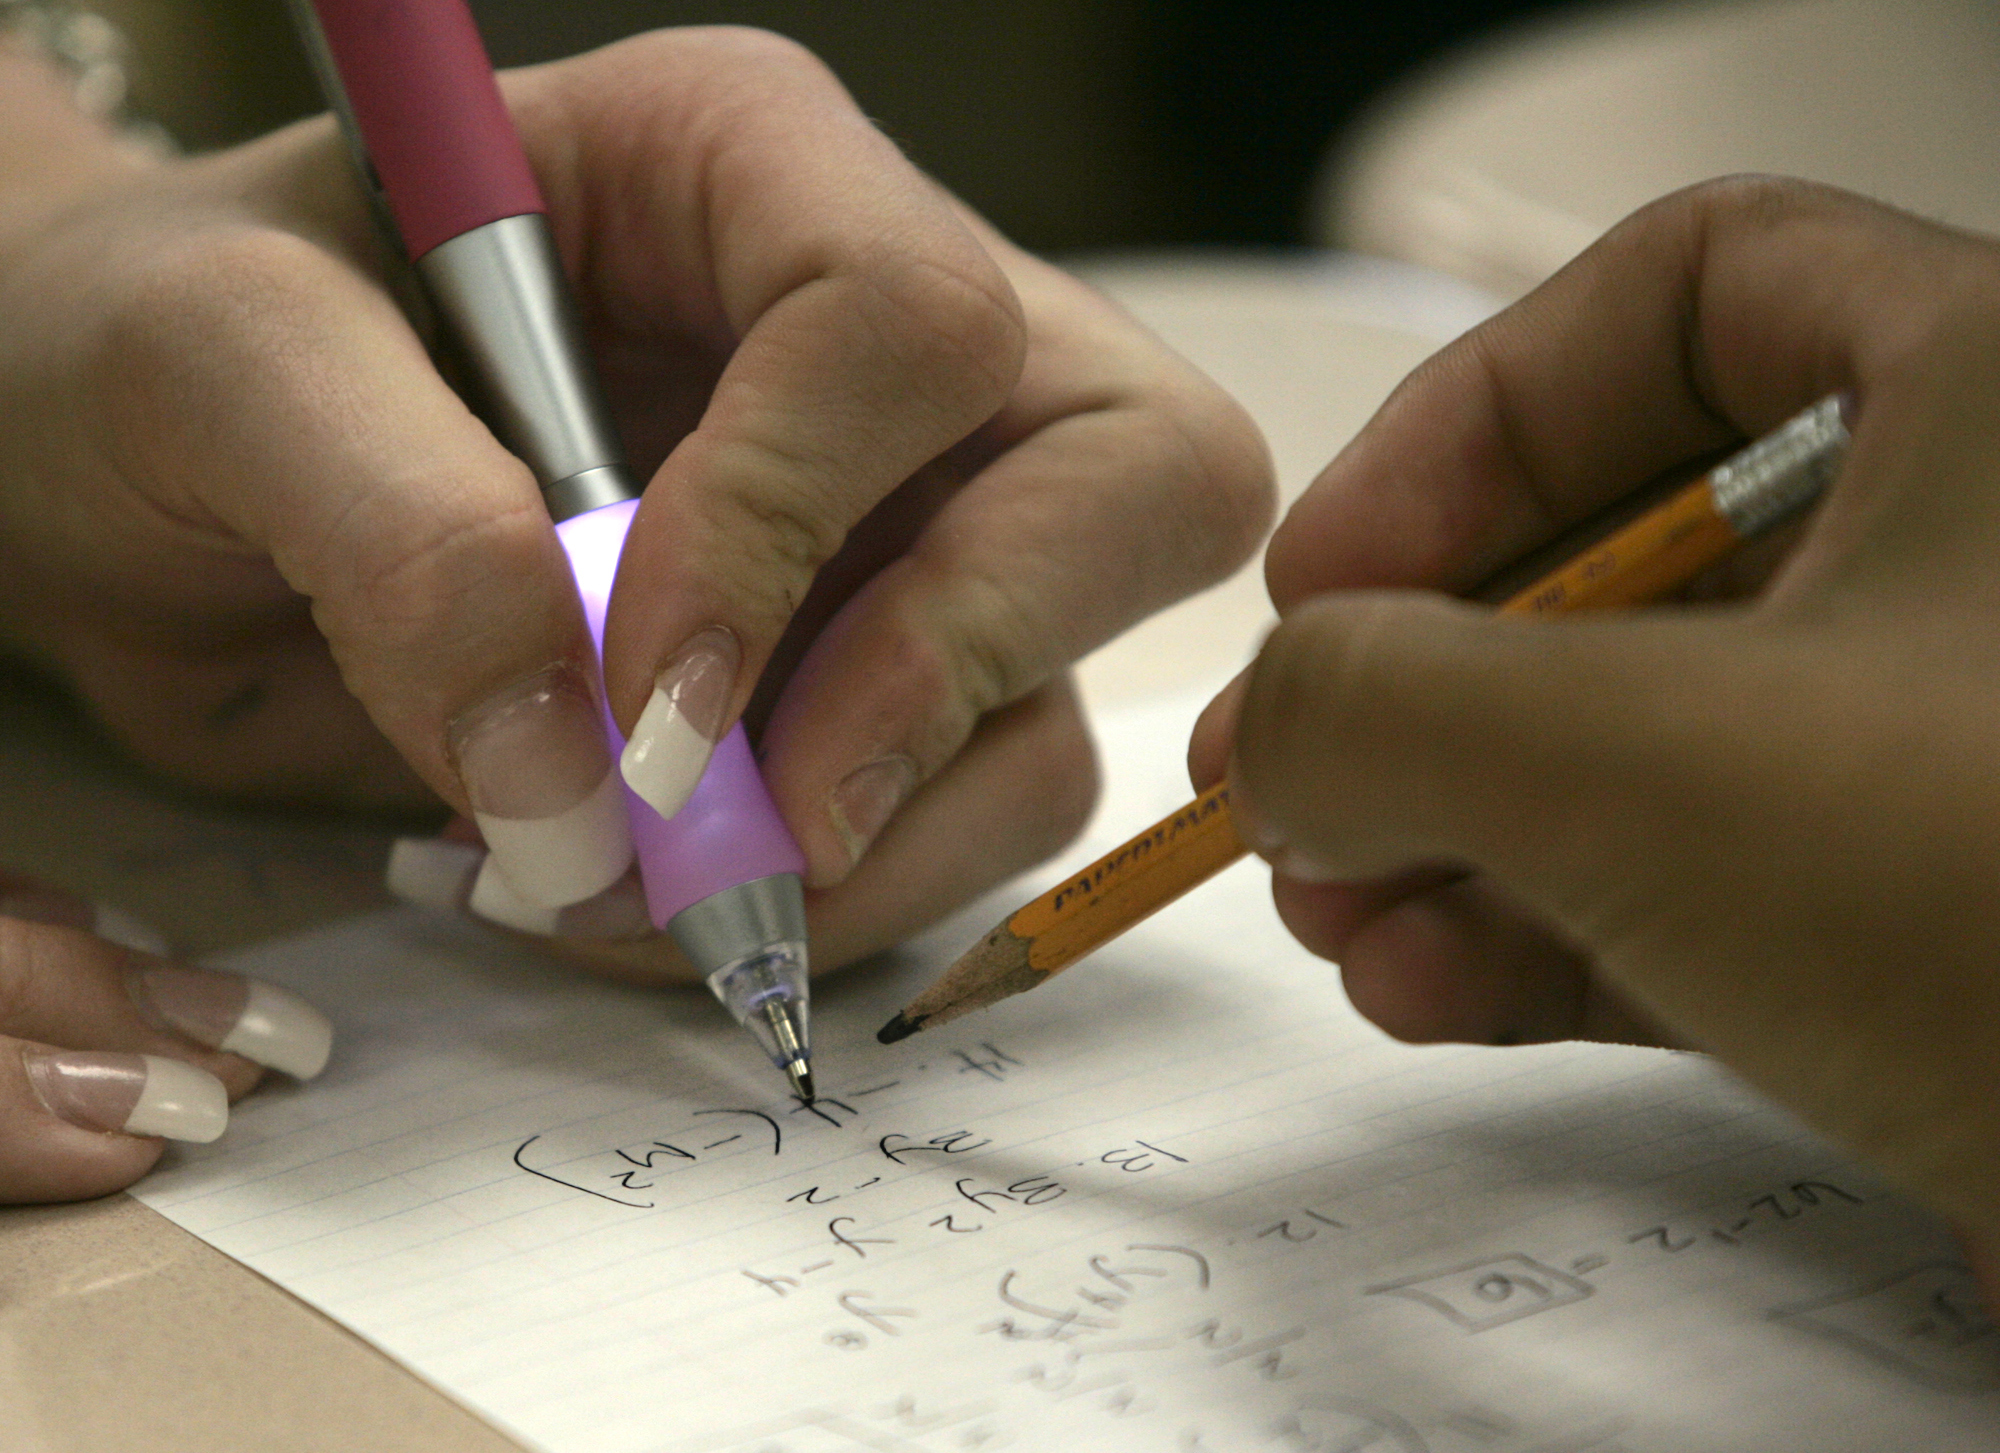 Riverside, Oct. 20, 2005 – – Students work on problem at math's class specially arranged at Martin